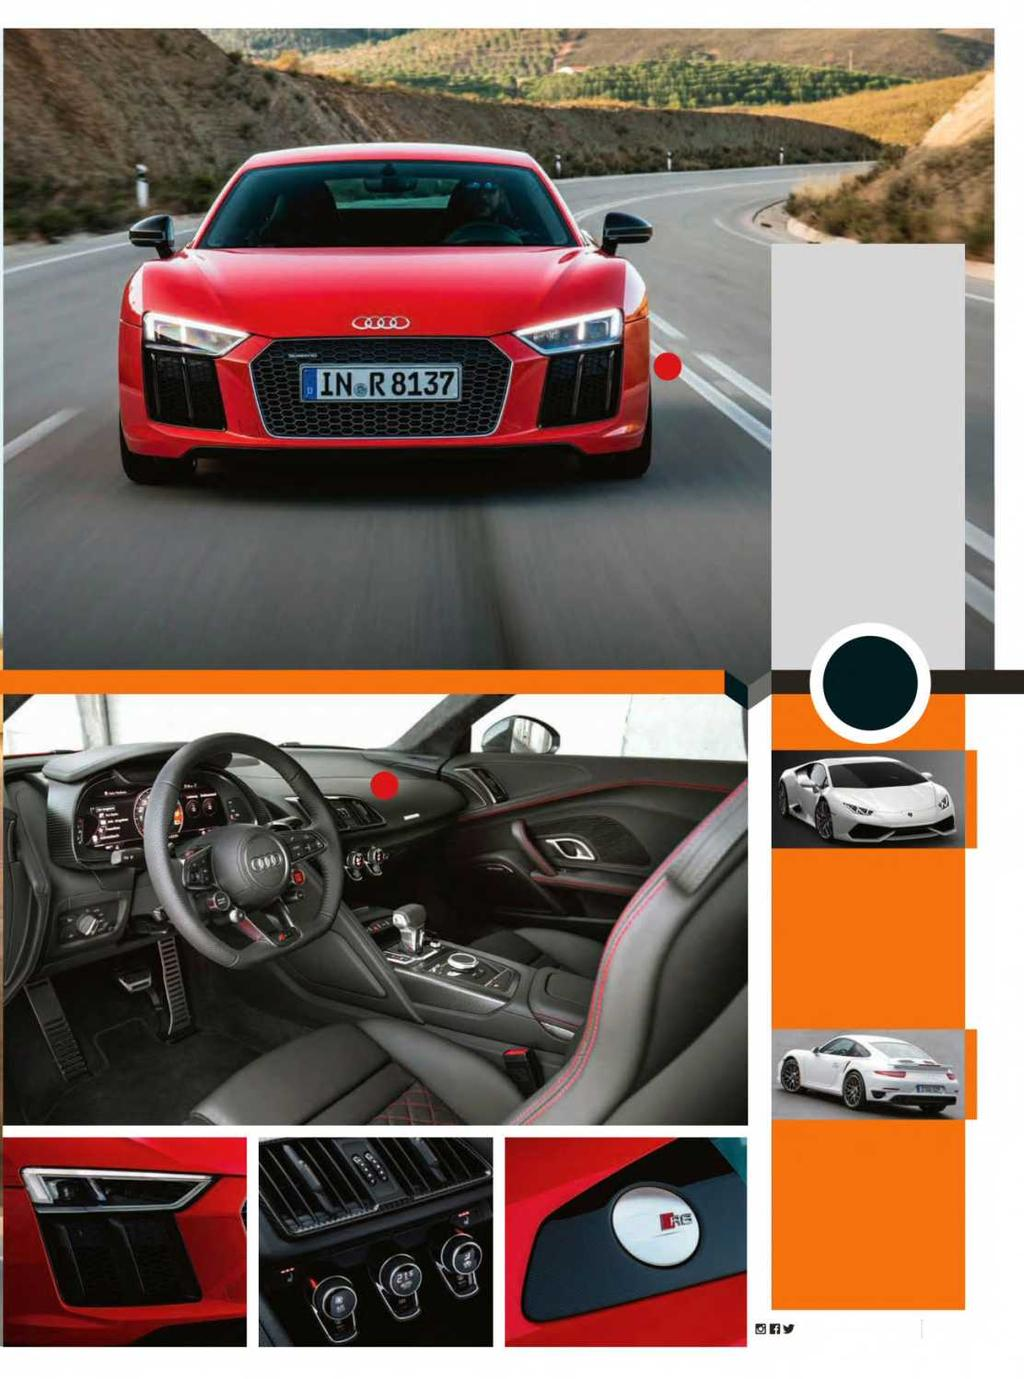 Contents N Ext Issue On Sale 17 September Redline Every 58 Not Carrying The Gt4 Suspension Whether Disc Or Drum Rear Despite Lambo Componentry There Are No Raging Bull Badges Even Engine Intake